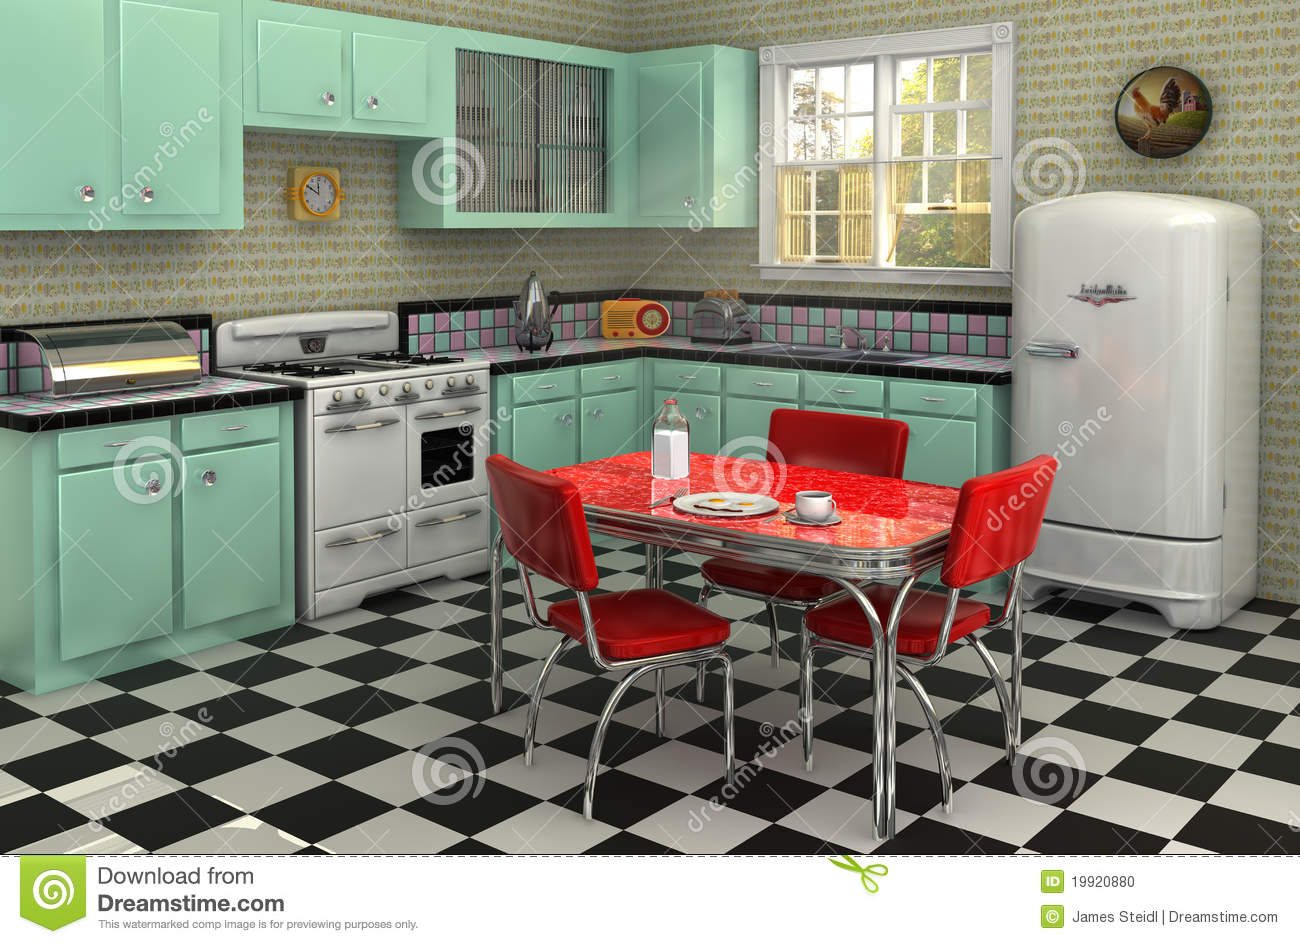 1950 39 S Kitchen Stock Illustration Image Of American 19920880